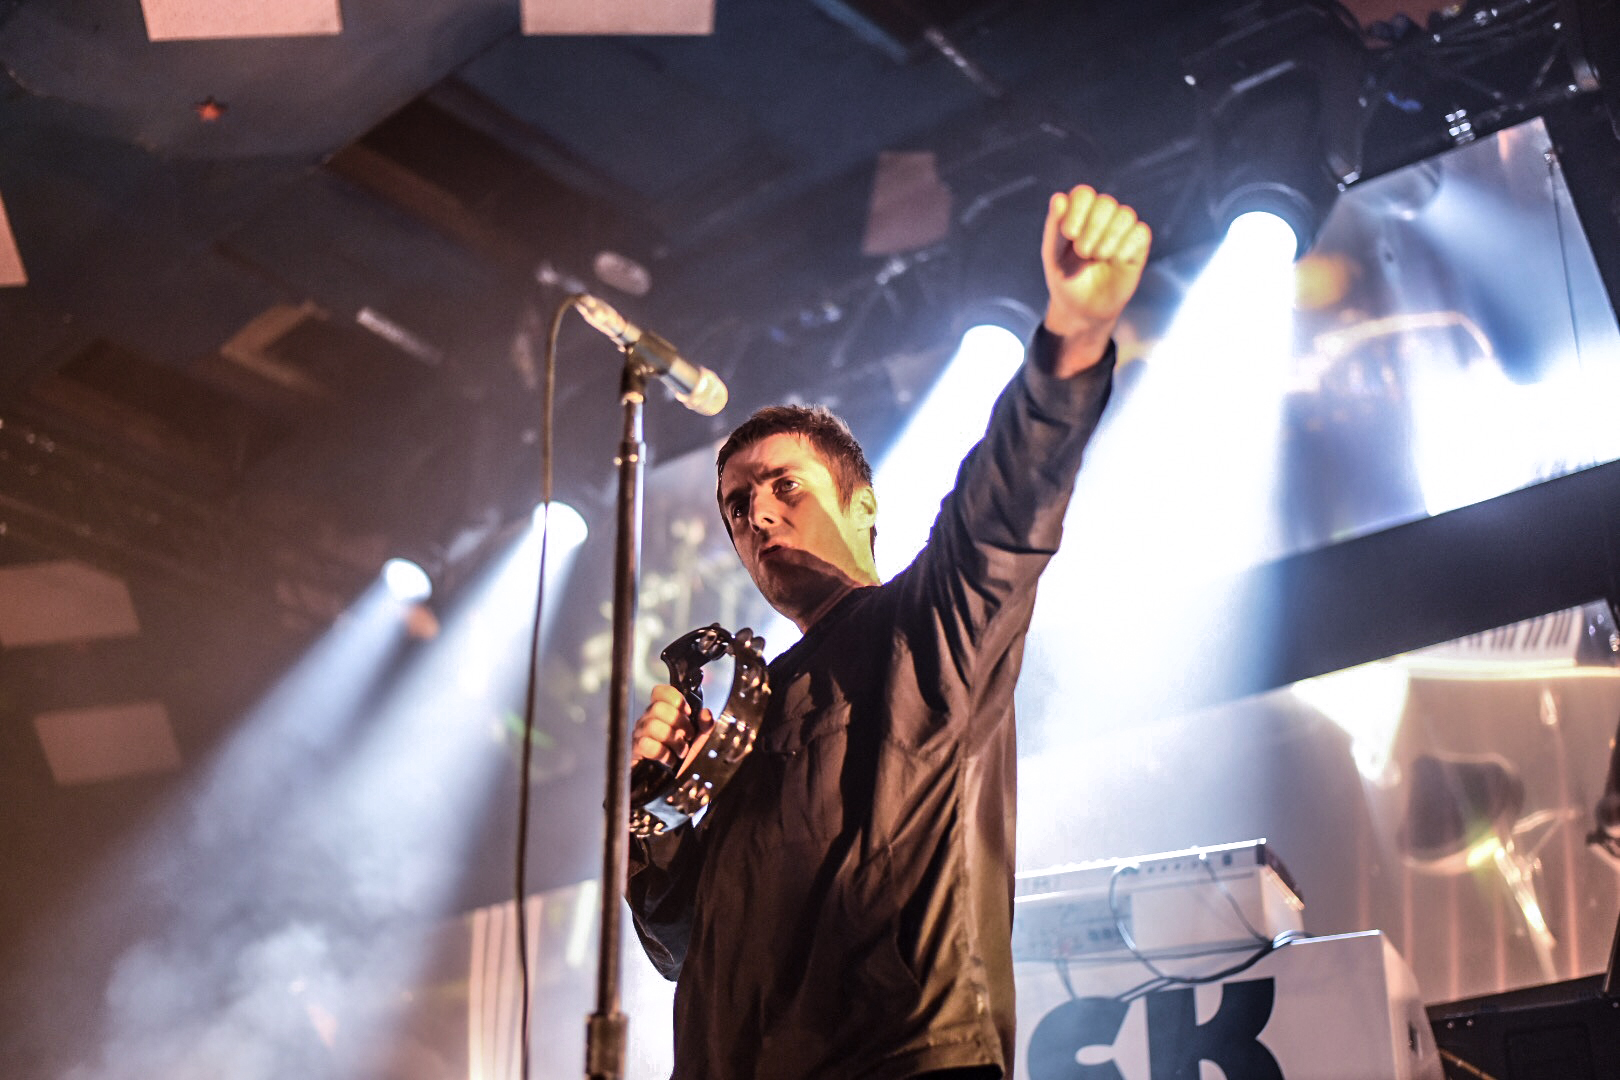 14 - Liam Gallagher performing to Sold Out Crowd at Glasgow's Barrowlands as part of As You Were Tour - 11-06-2017 - Pic By - Calum Buchan Photography - Copy.jpg